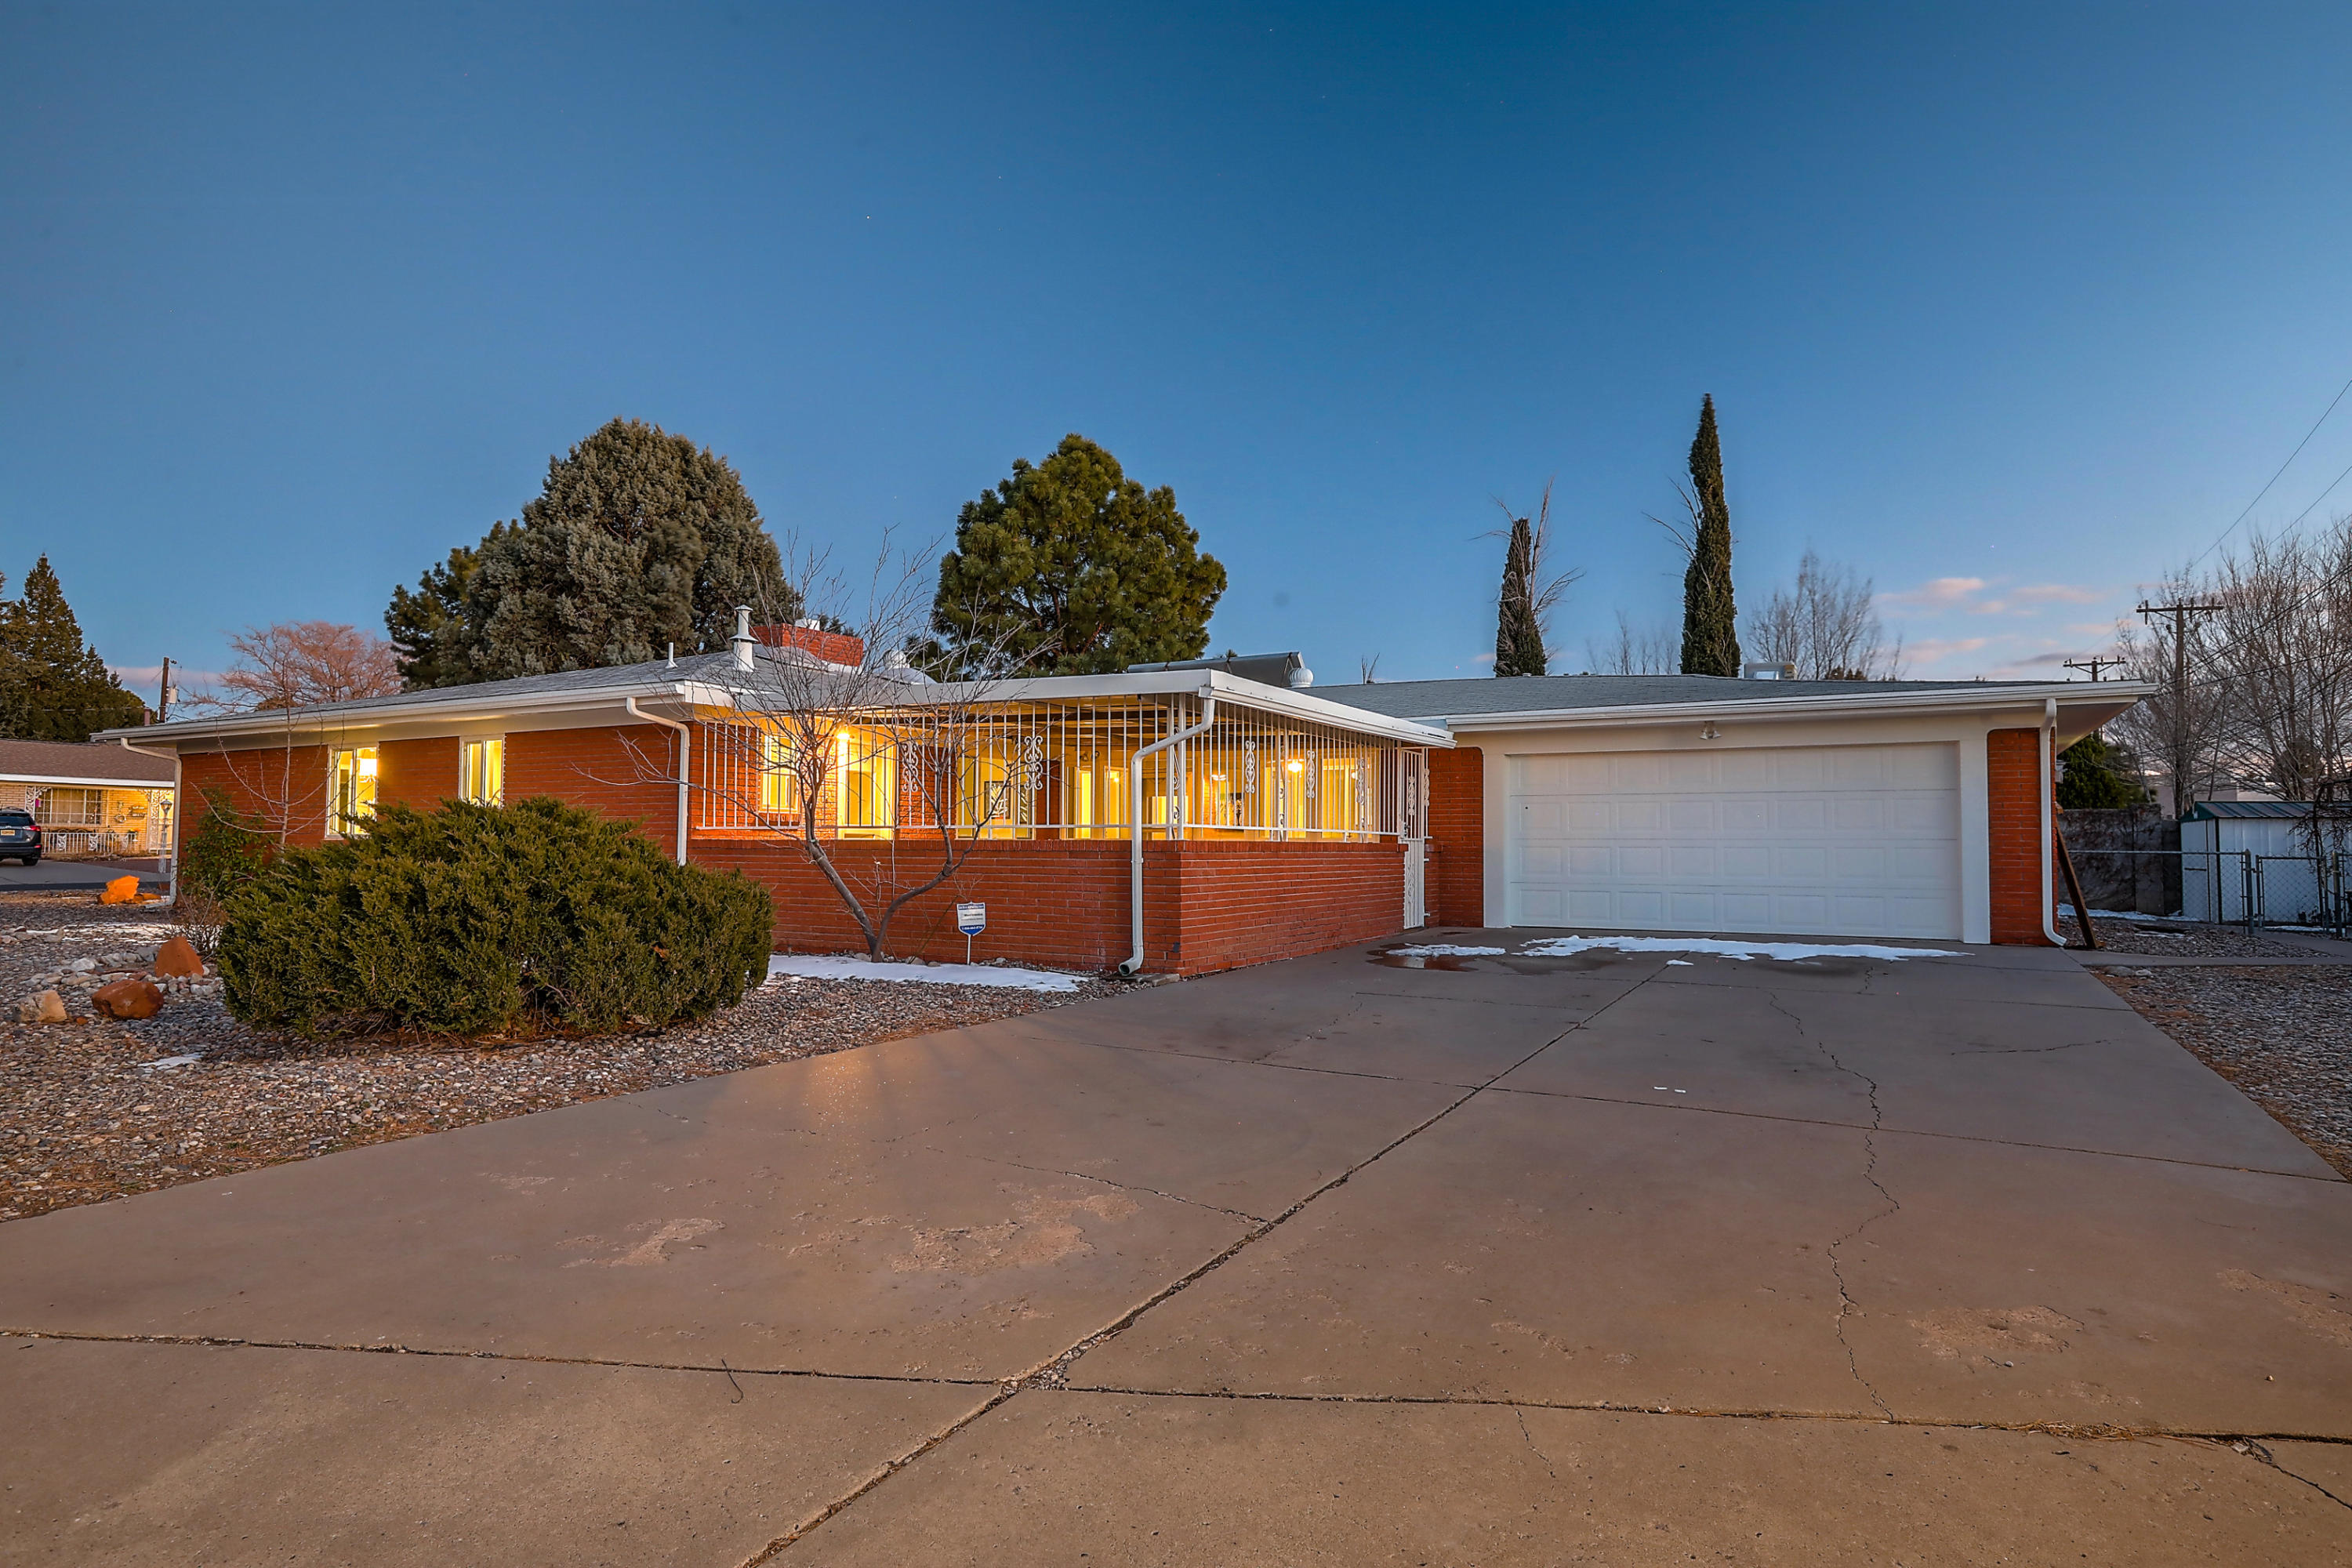 The fabulously updated house in UNM that you have been waiting for! From the gleaming hardwood floors to all of the shiny countertops and appliances this home sings! All appliances are new including the washer and dryer. Lighting is all LED, including the recessed lighting that has been added. The windows have been replaced and are easy-clean tilt-in. The fireplace has a gas insert and can also be woodburning. Who ever heard of marble window sills? Here they are! The bathrooms are also completely redone. Enjoy the wonderful New Mexico weather from the enclosed patio.Great location near shopping, UNM and all of its activities, Interstates, Nob Hill and its restaurants. Perfect in every way.Complete with new plumbing valves and water meter.